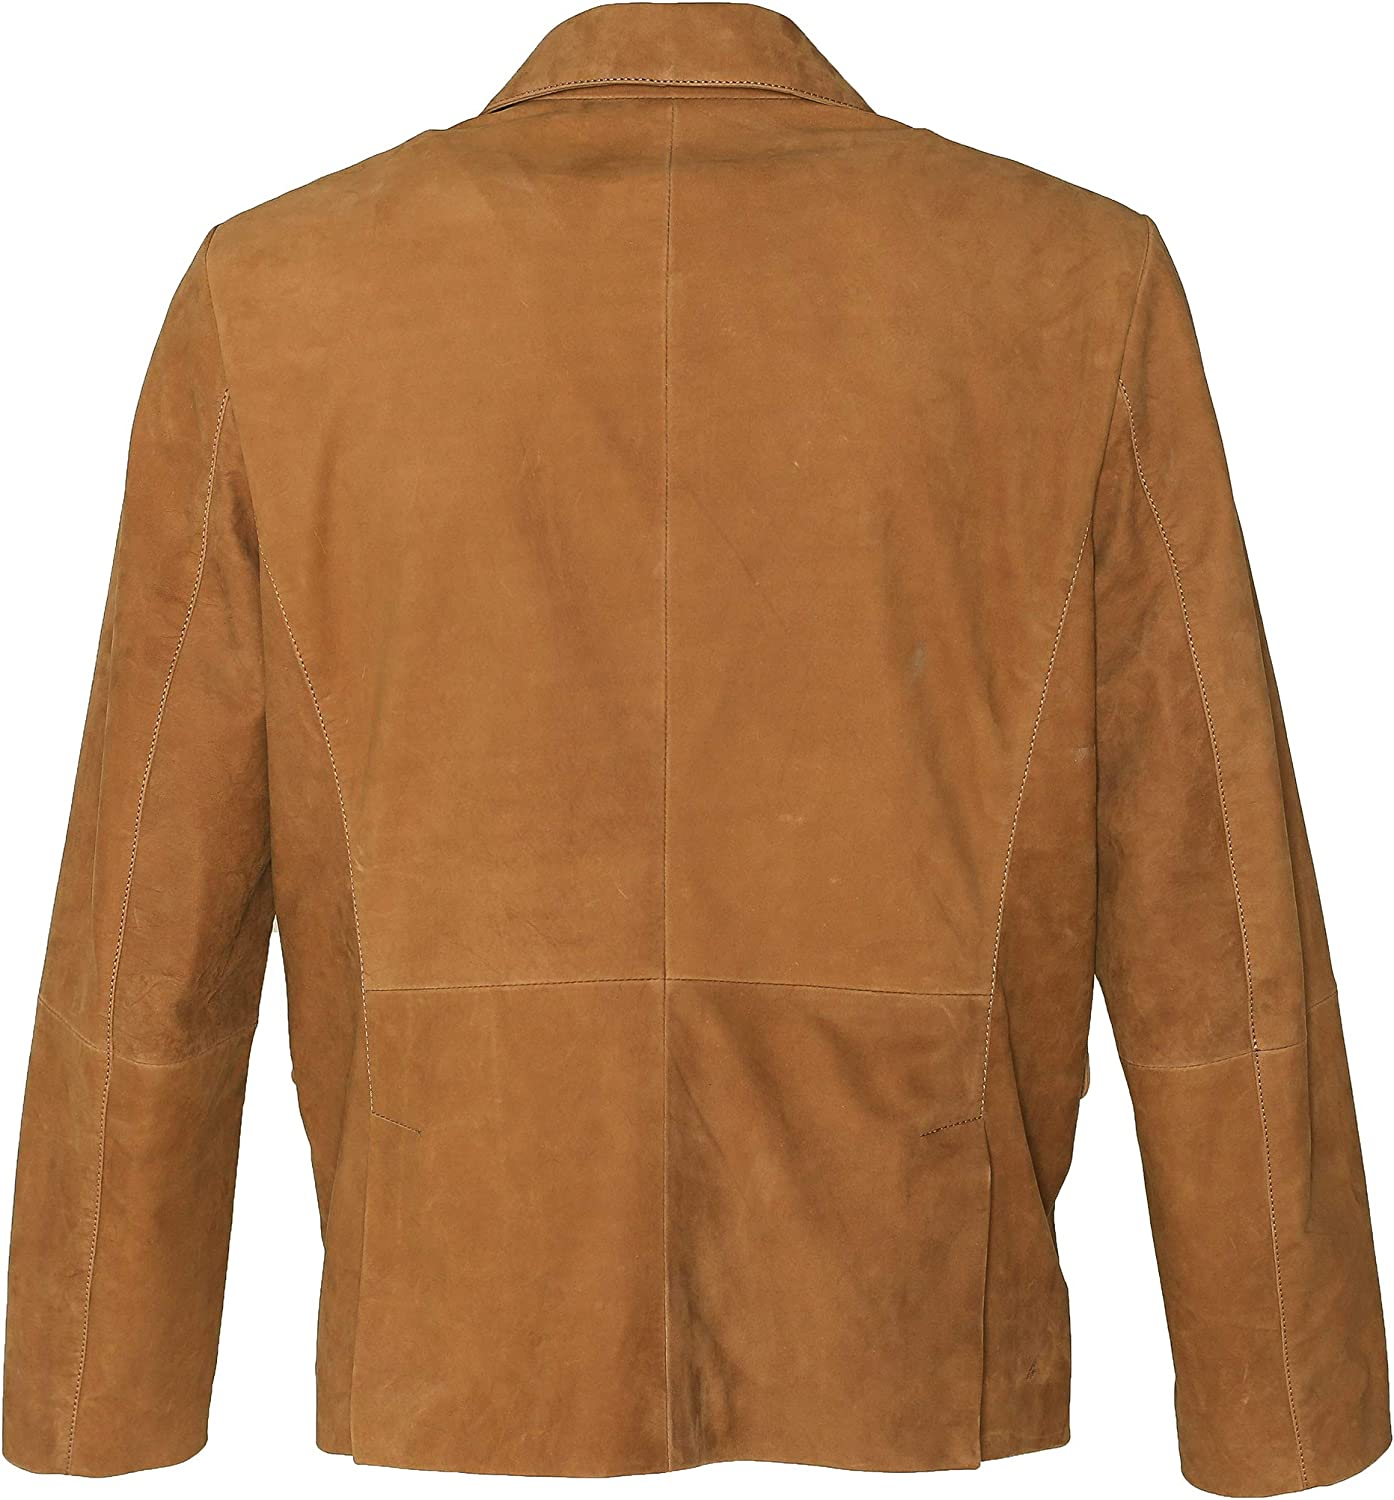 Mens Brown Suede Leather Casual Blazer